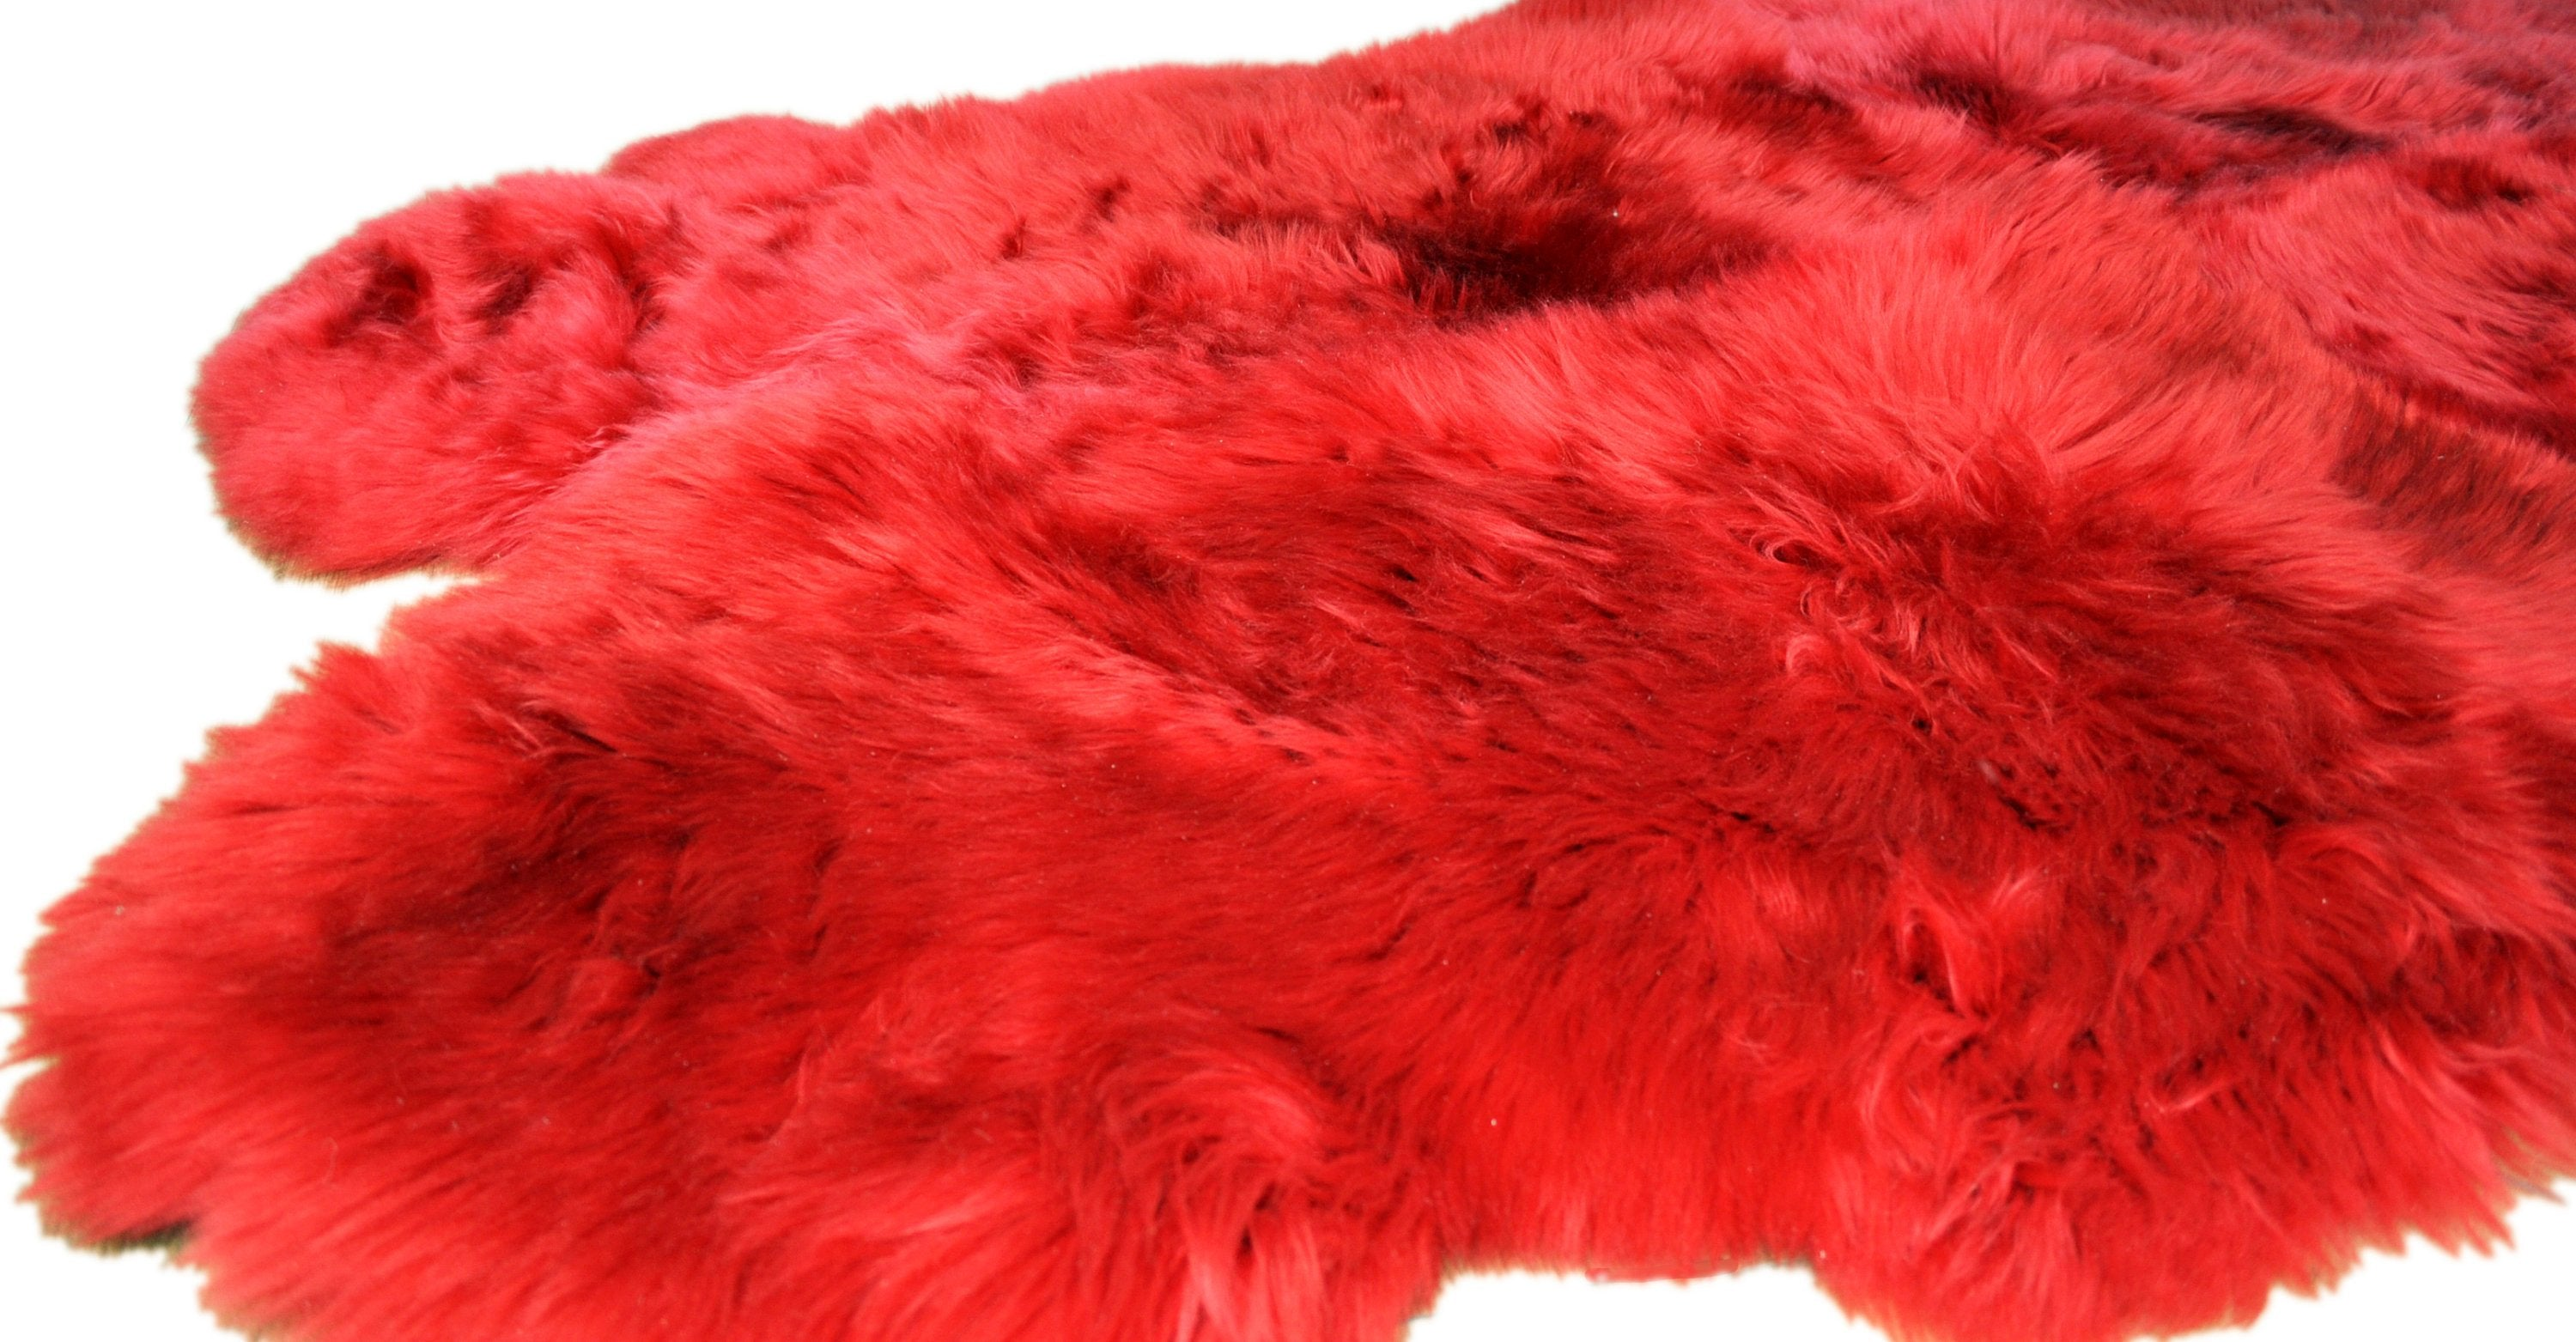 Quadruple Sheepskin Rug. Different Colors.